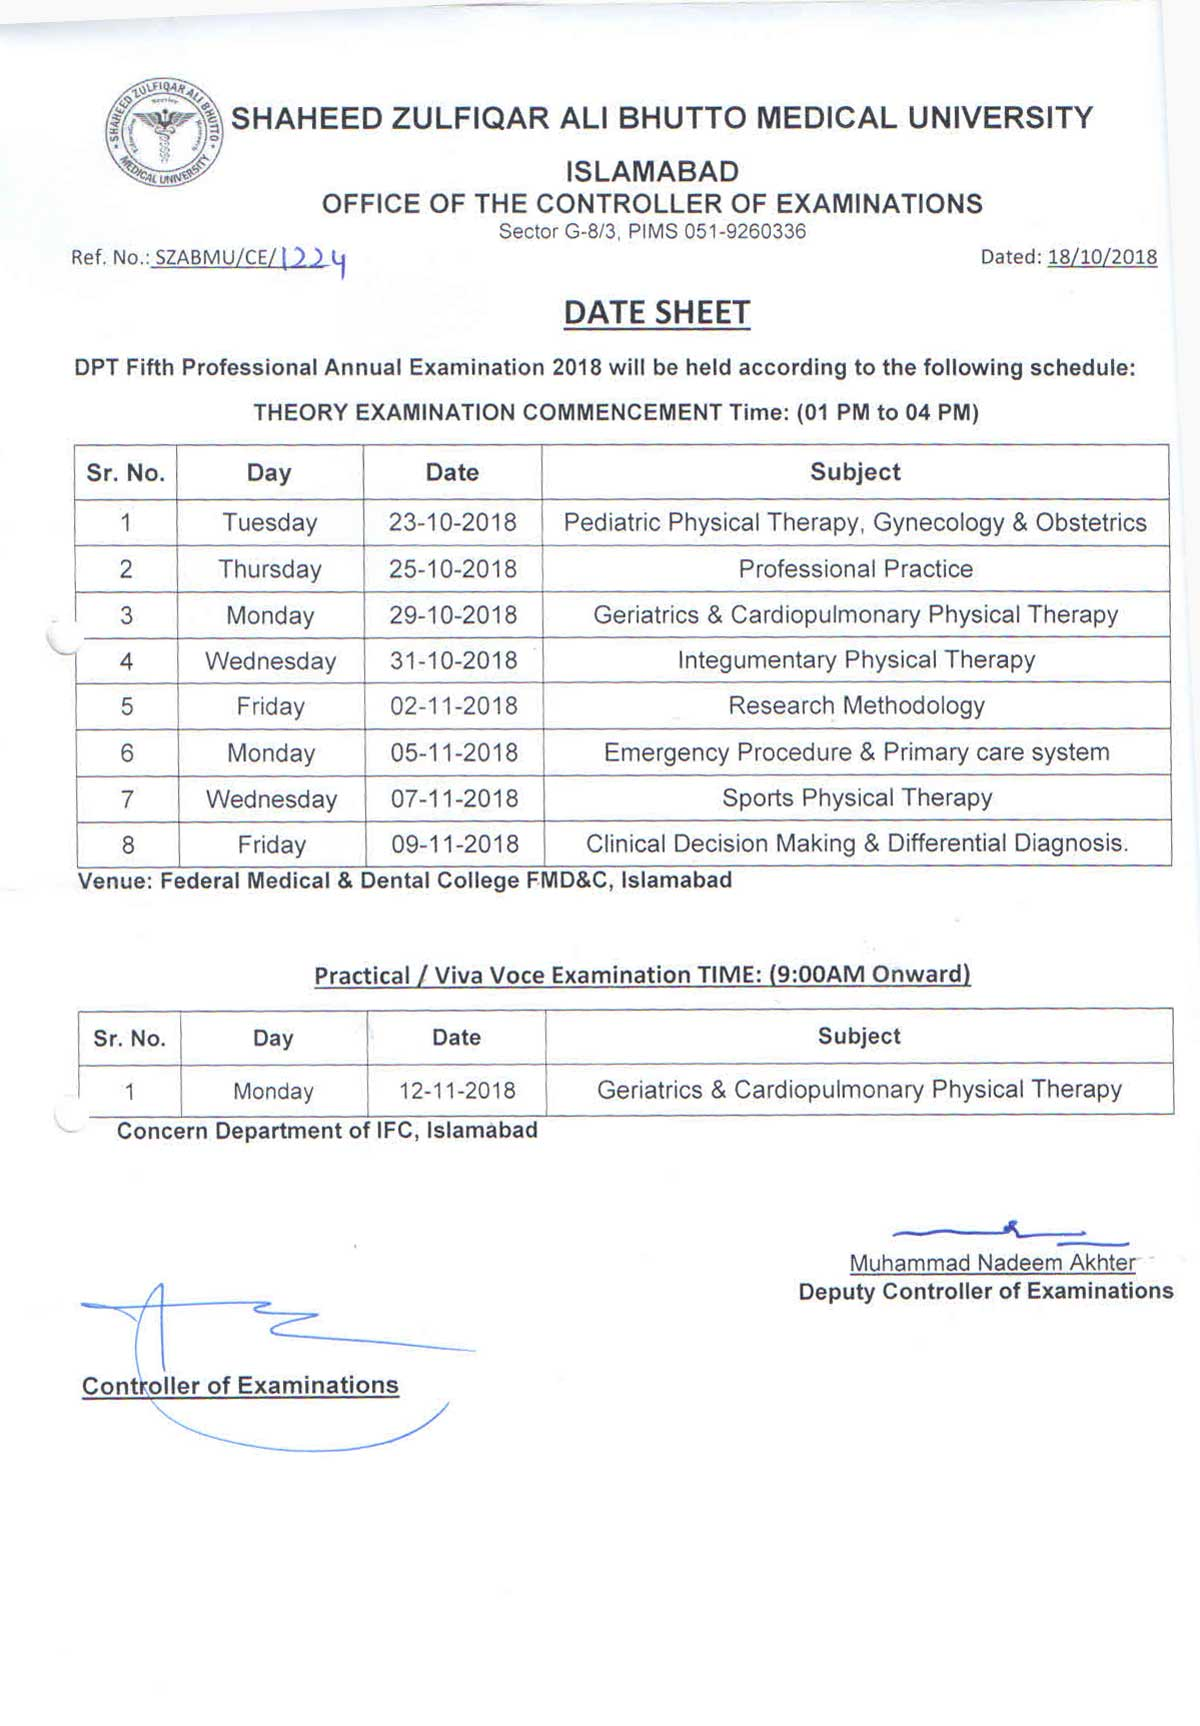 Date Sheet DPT Fifth Professional Annual Examination 2018